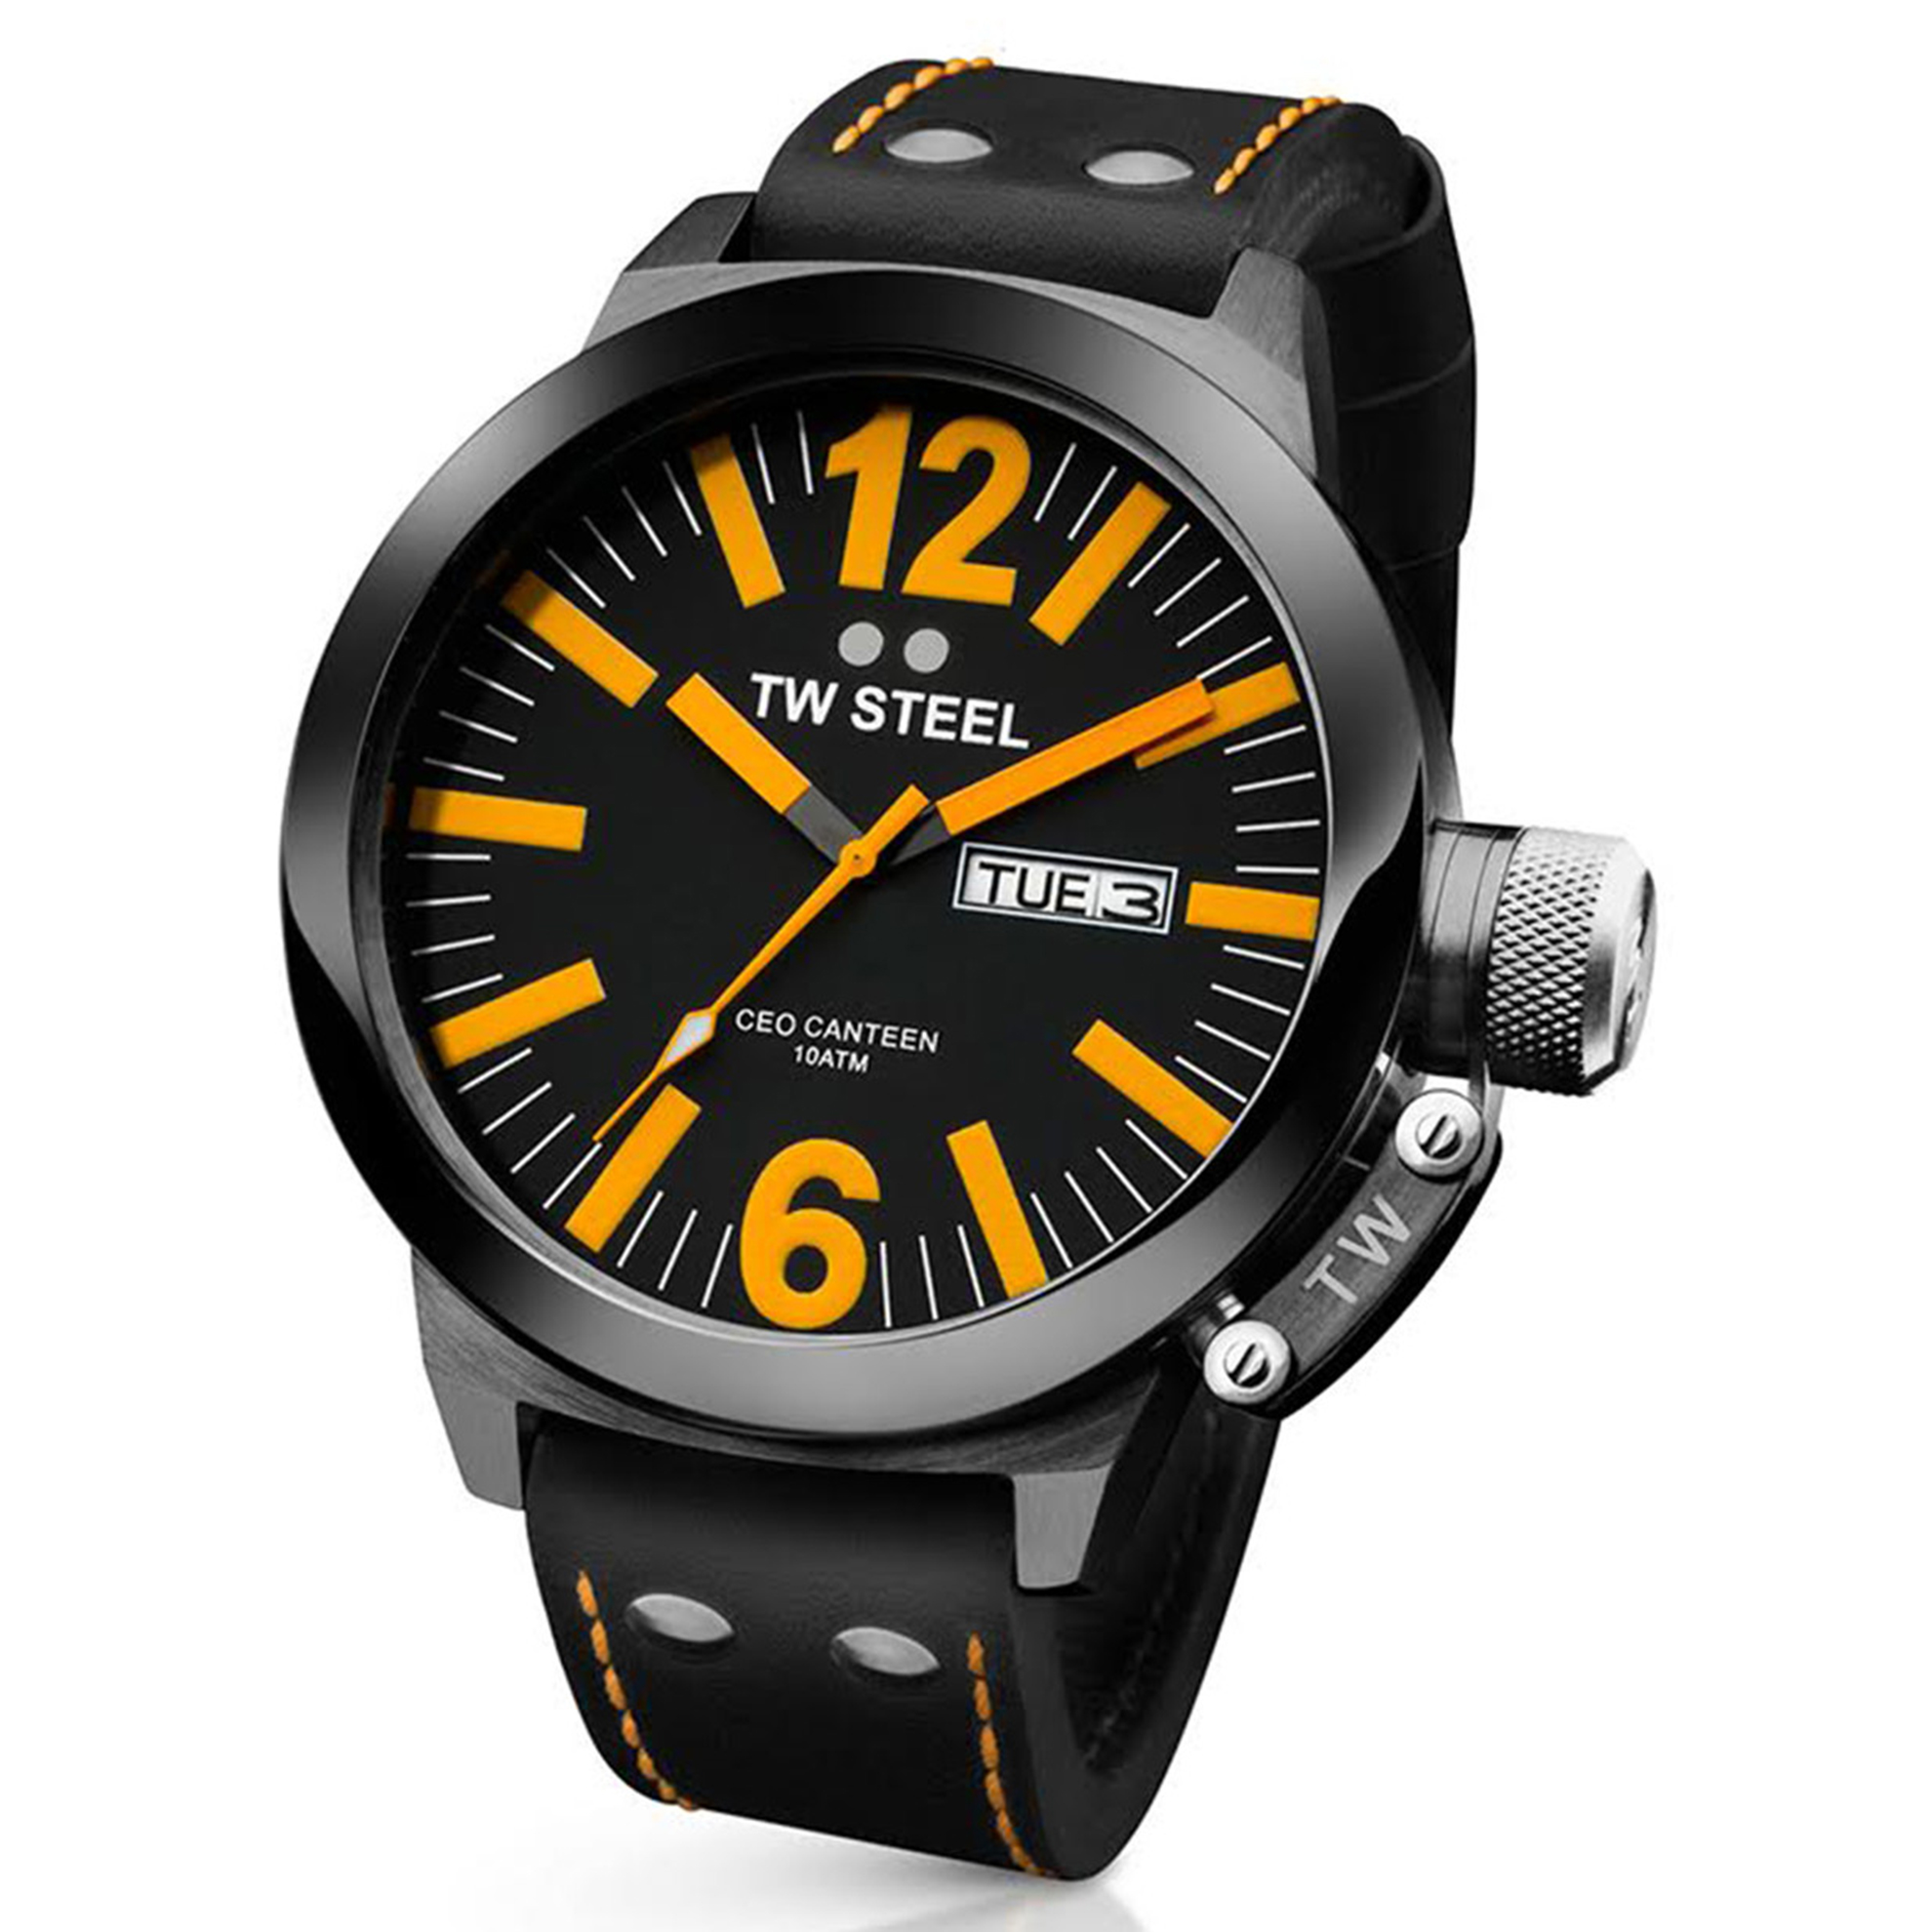 TW Steel CE1028 TW Steel CEO Canteen Black PVD Orange Markers Leather Strap